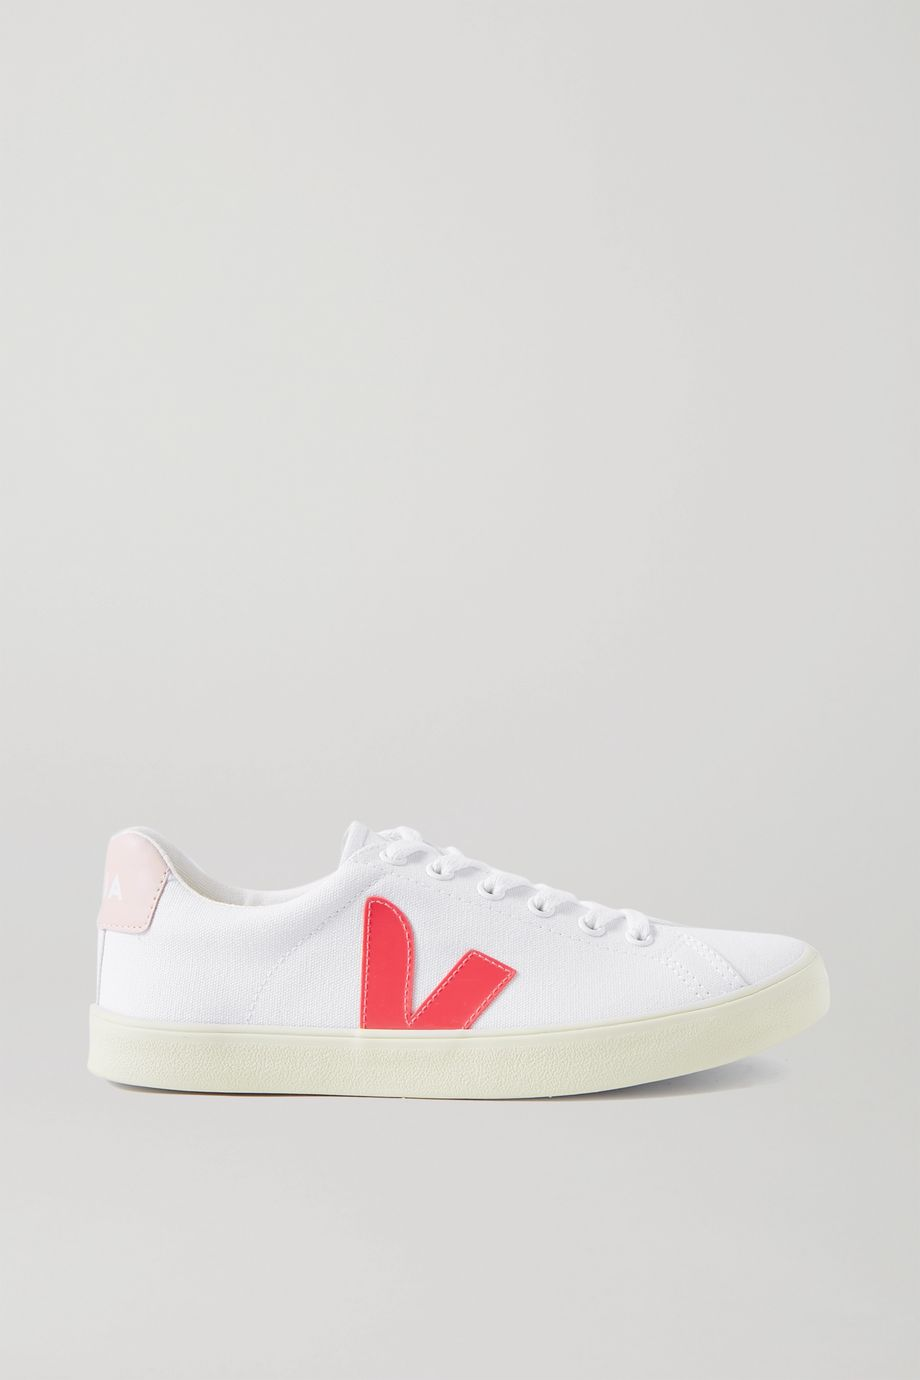 Veja Esplar rubber-trimmed organic cotton-canvas sneakers